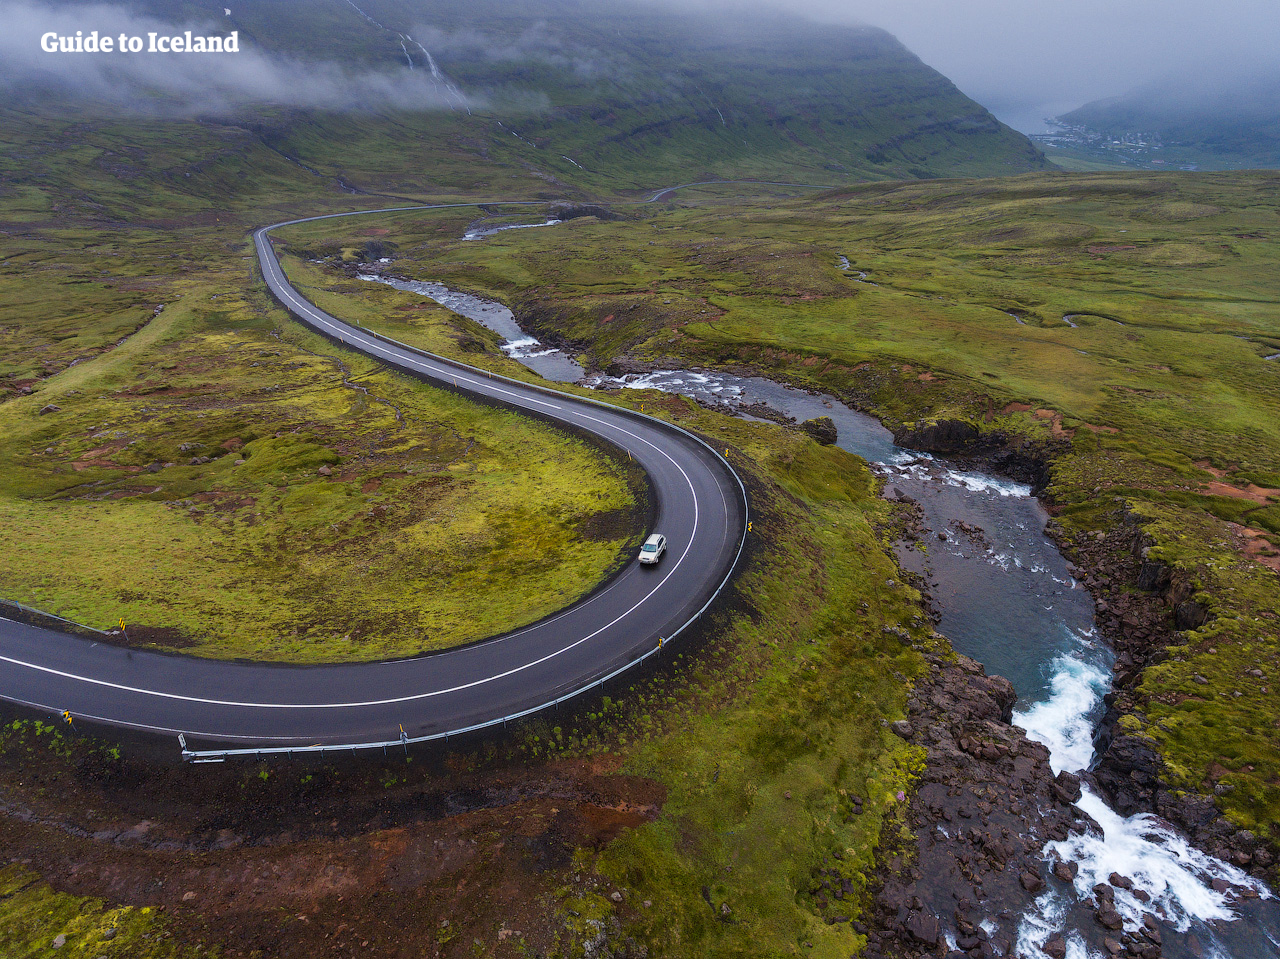 Driving in Seyðisfjörður in the East Fjords of Iceland means a lot of twists and turns.